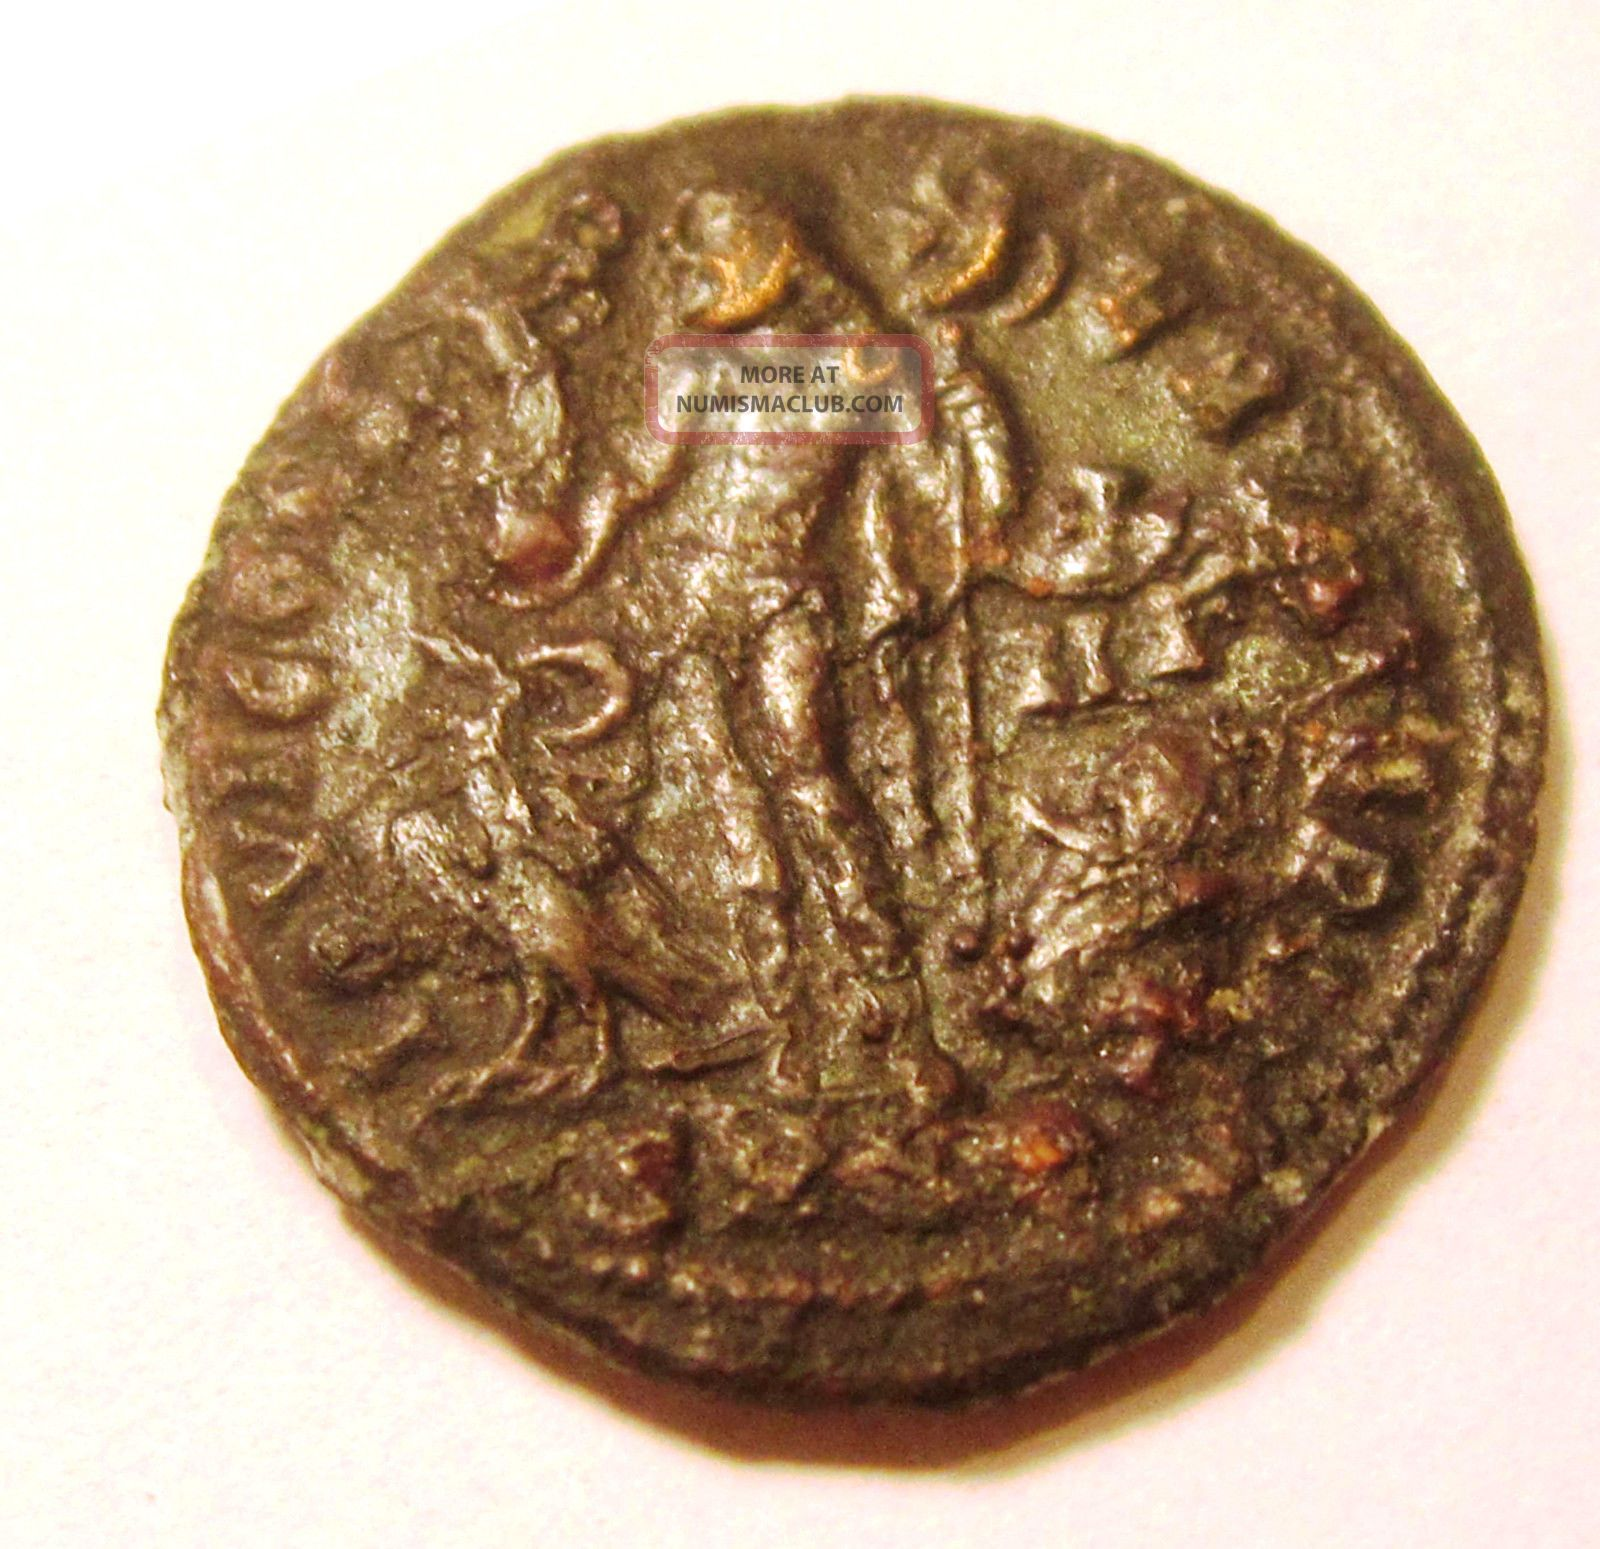 dating ancient roman coins Collecting ancient roman coins is a unique hobby that lets you own artifacts used when greats like julius caesar, alexander the great, cleopatra, constantine, and jesus were alive millions.